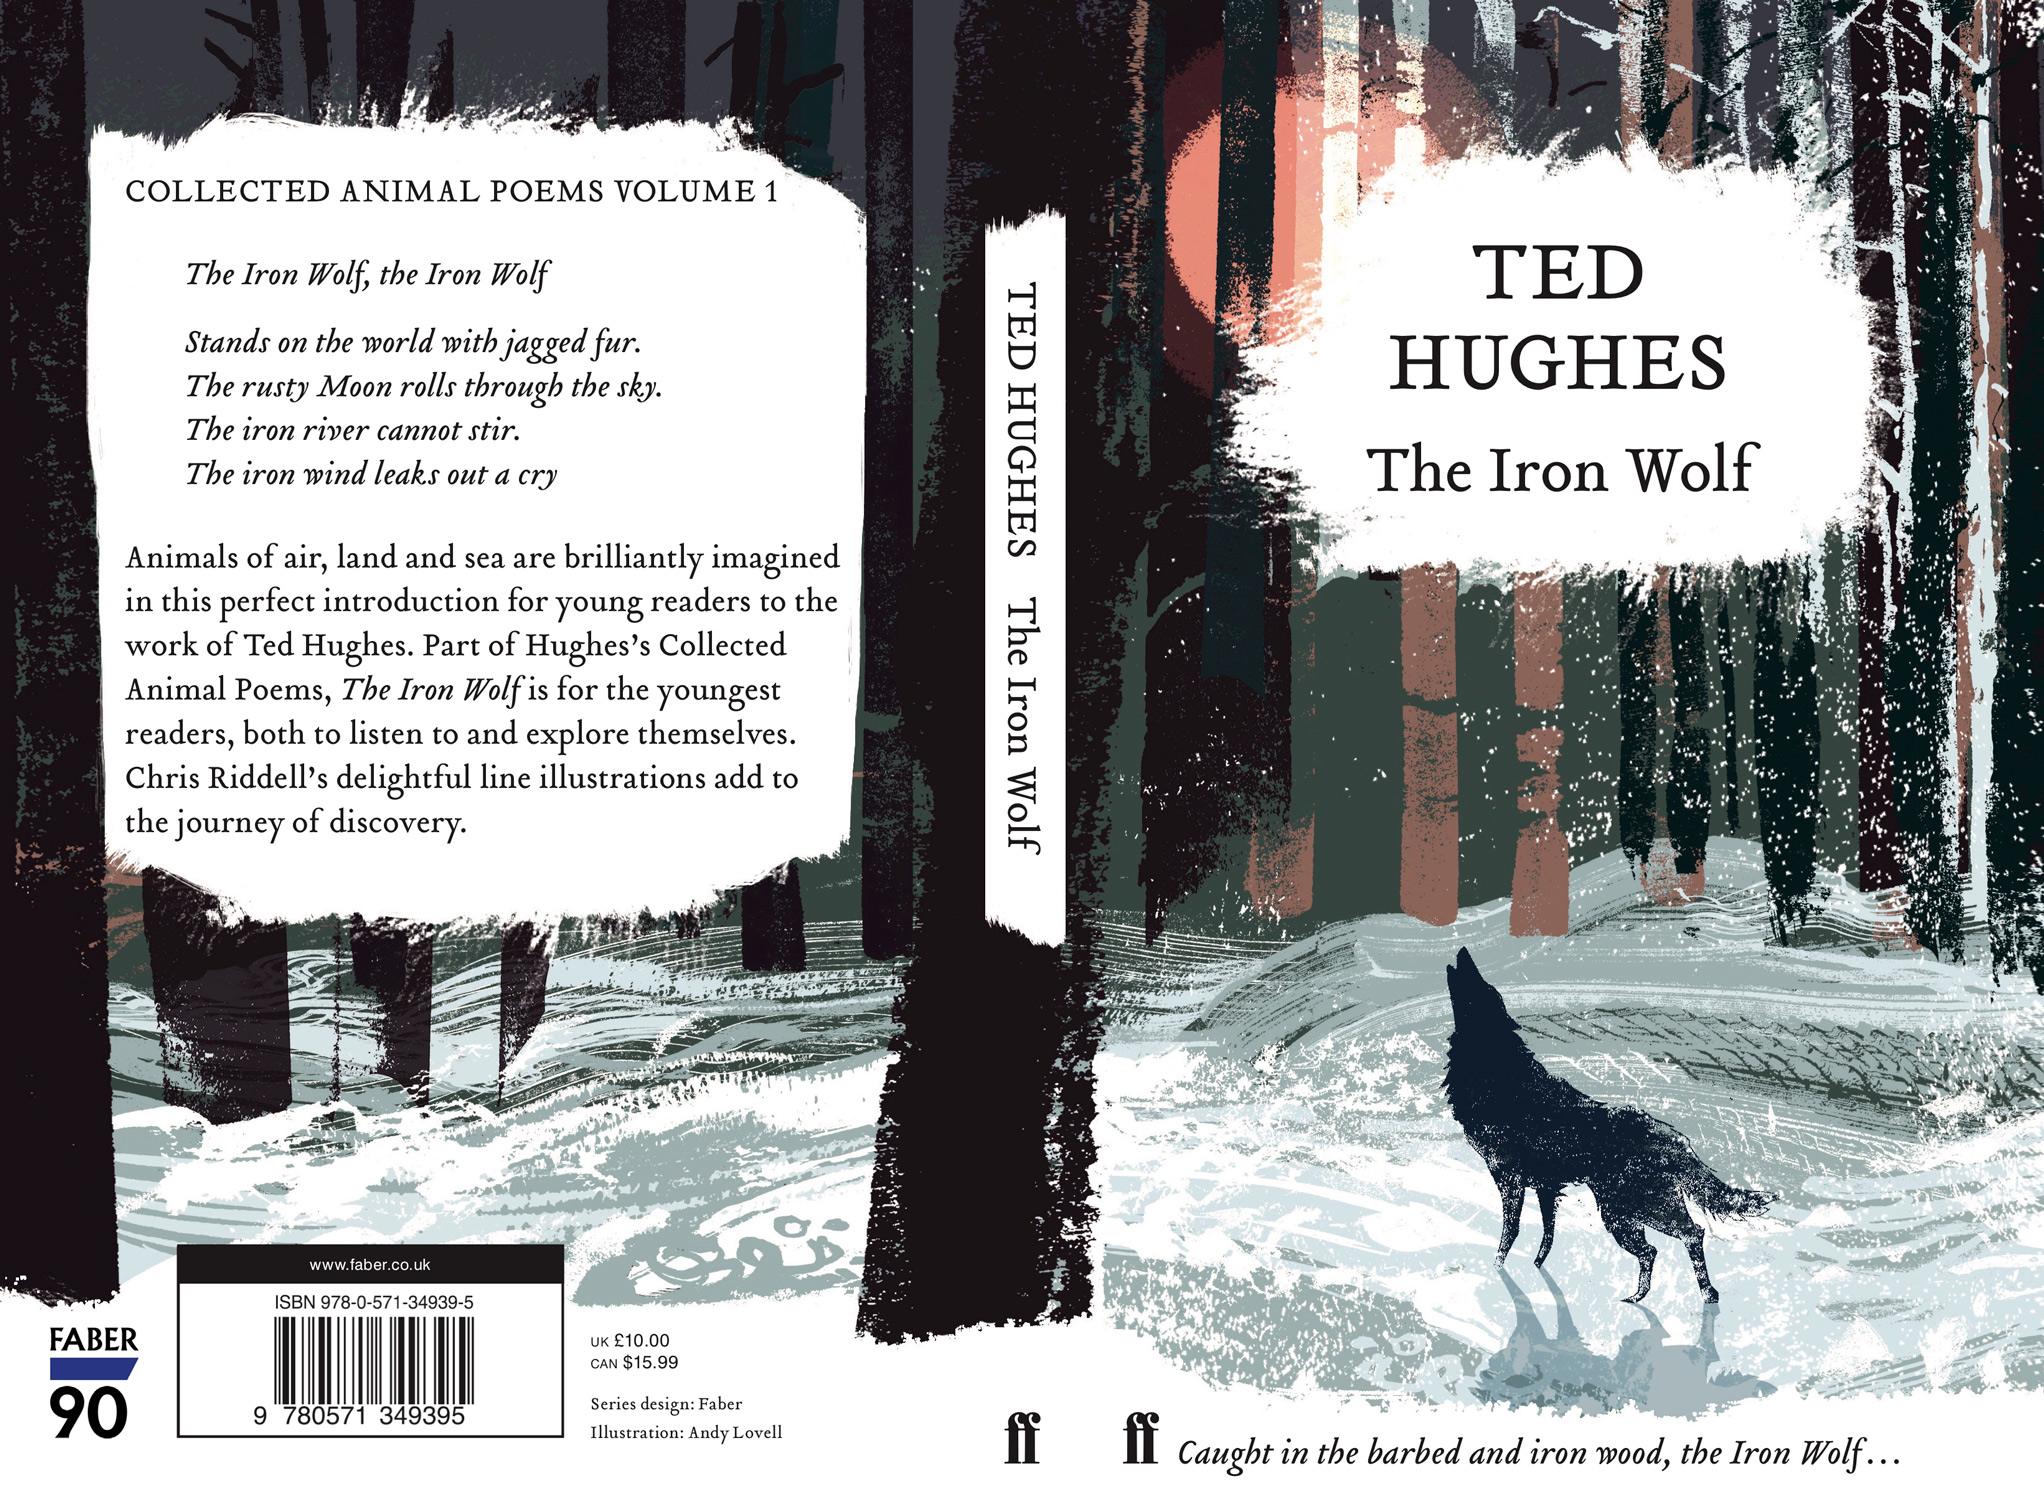 The-Iron-Wolf-cover1500pxhigh.jpg